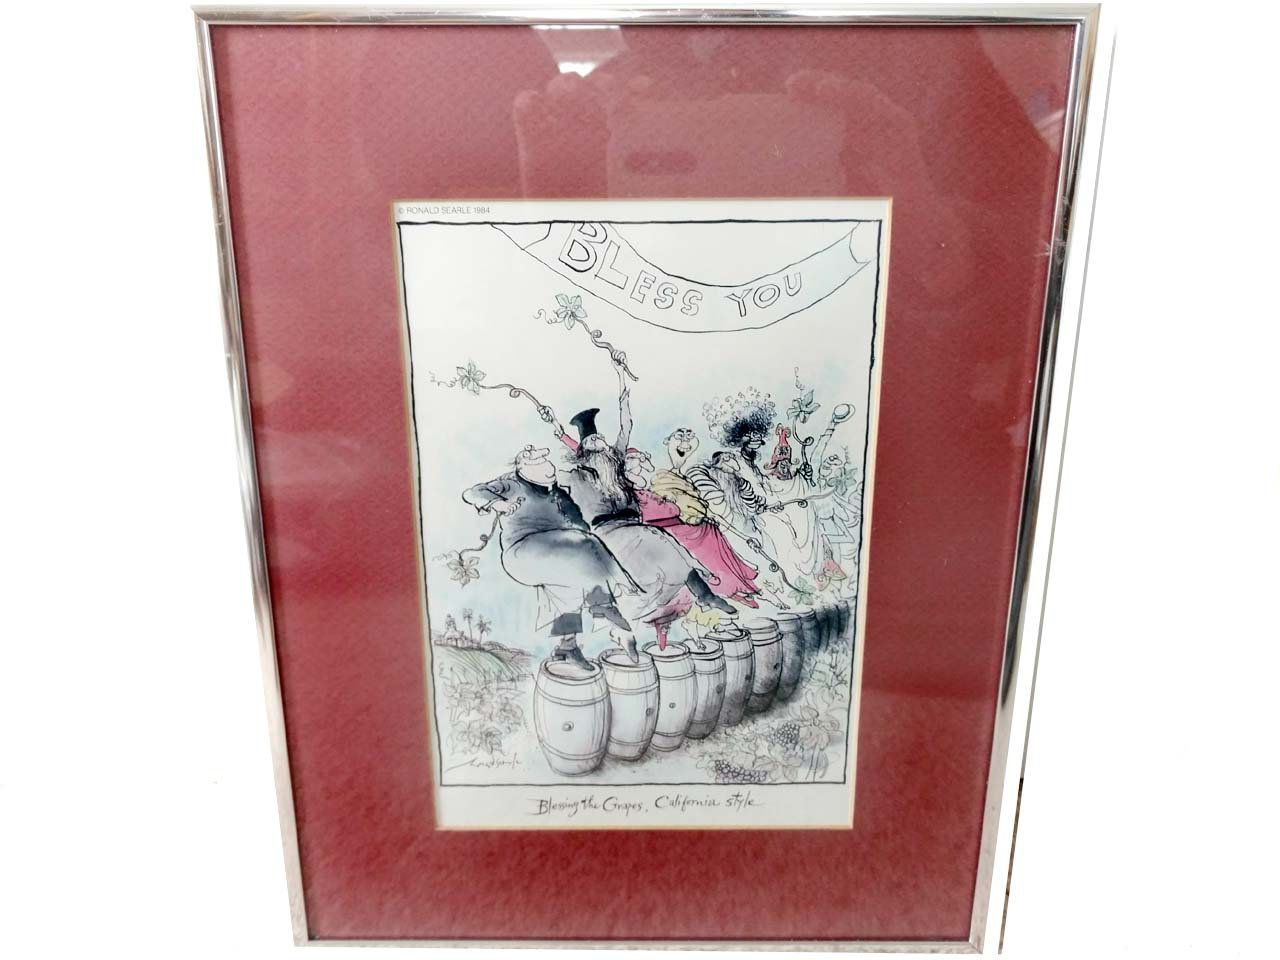 Ronald Searle Wine Print Blessing The Grapes California Style Framed Wall Hanging Silver Metal Picture Frame 14 Wine Print Metal Picture Frames Frames On Wall